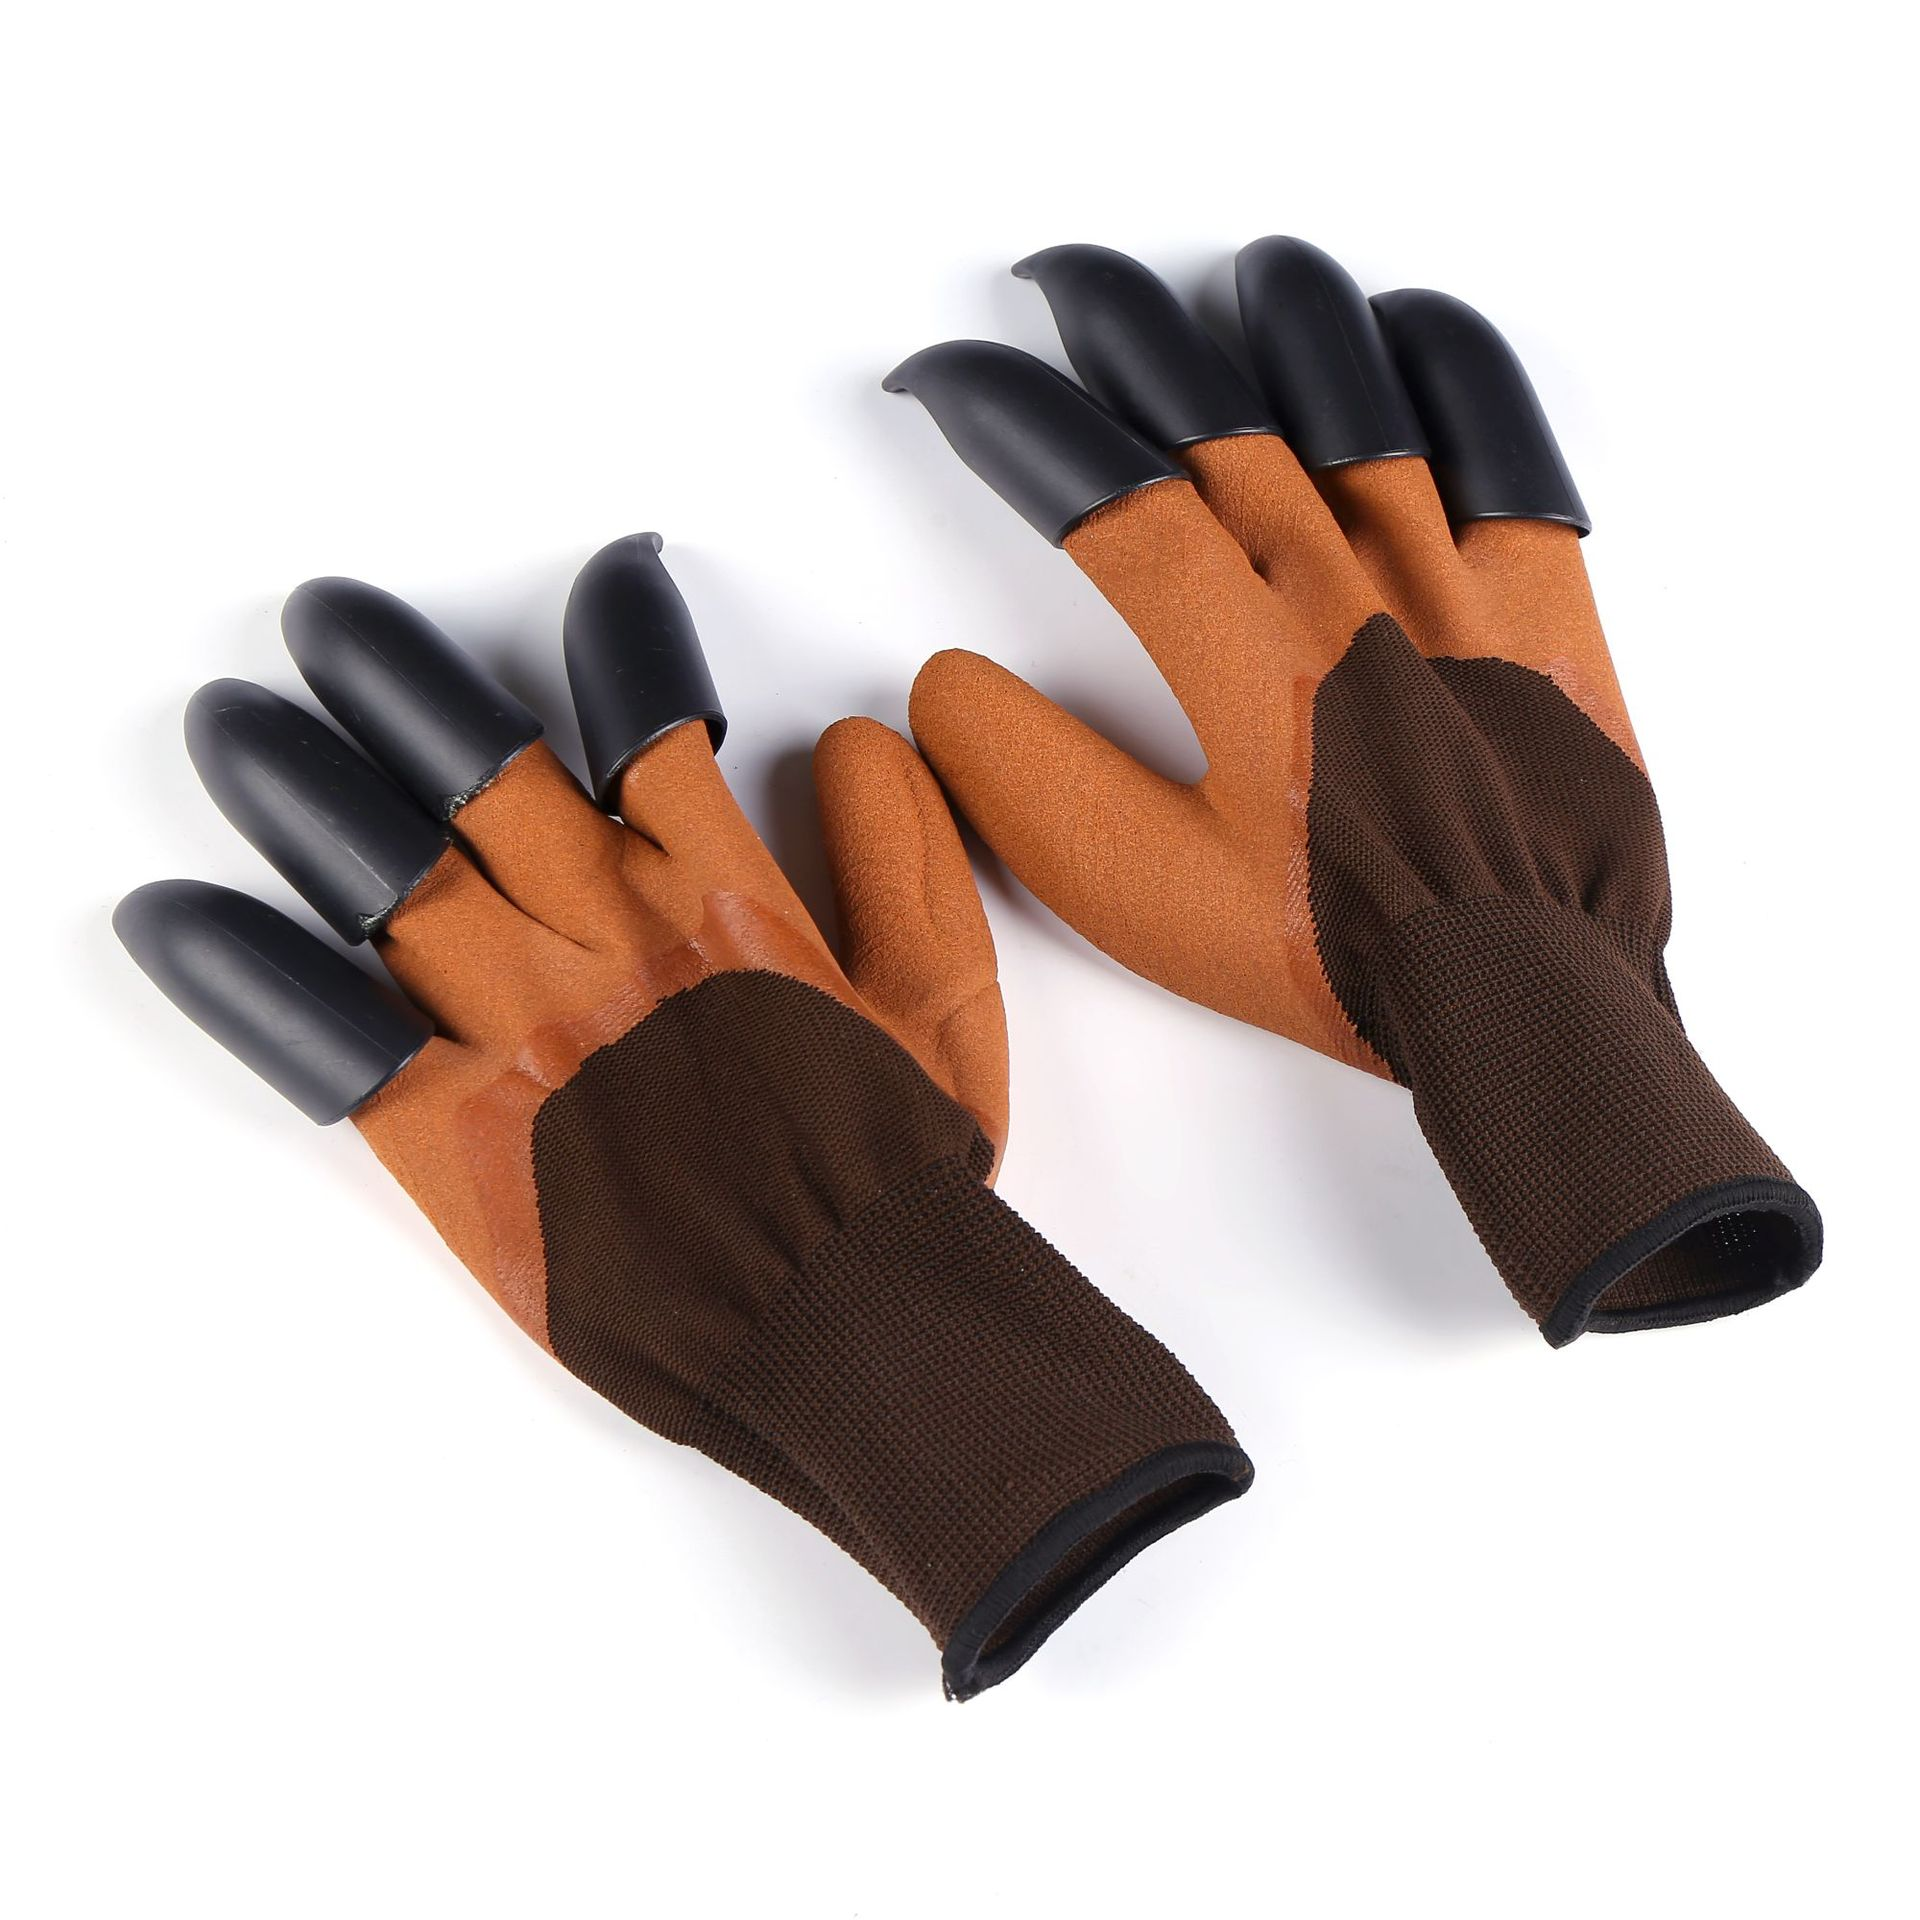 Non-Disposable Latex Gloves with Plastic Paws for Gardening